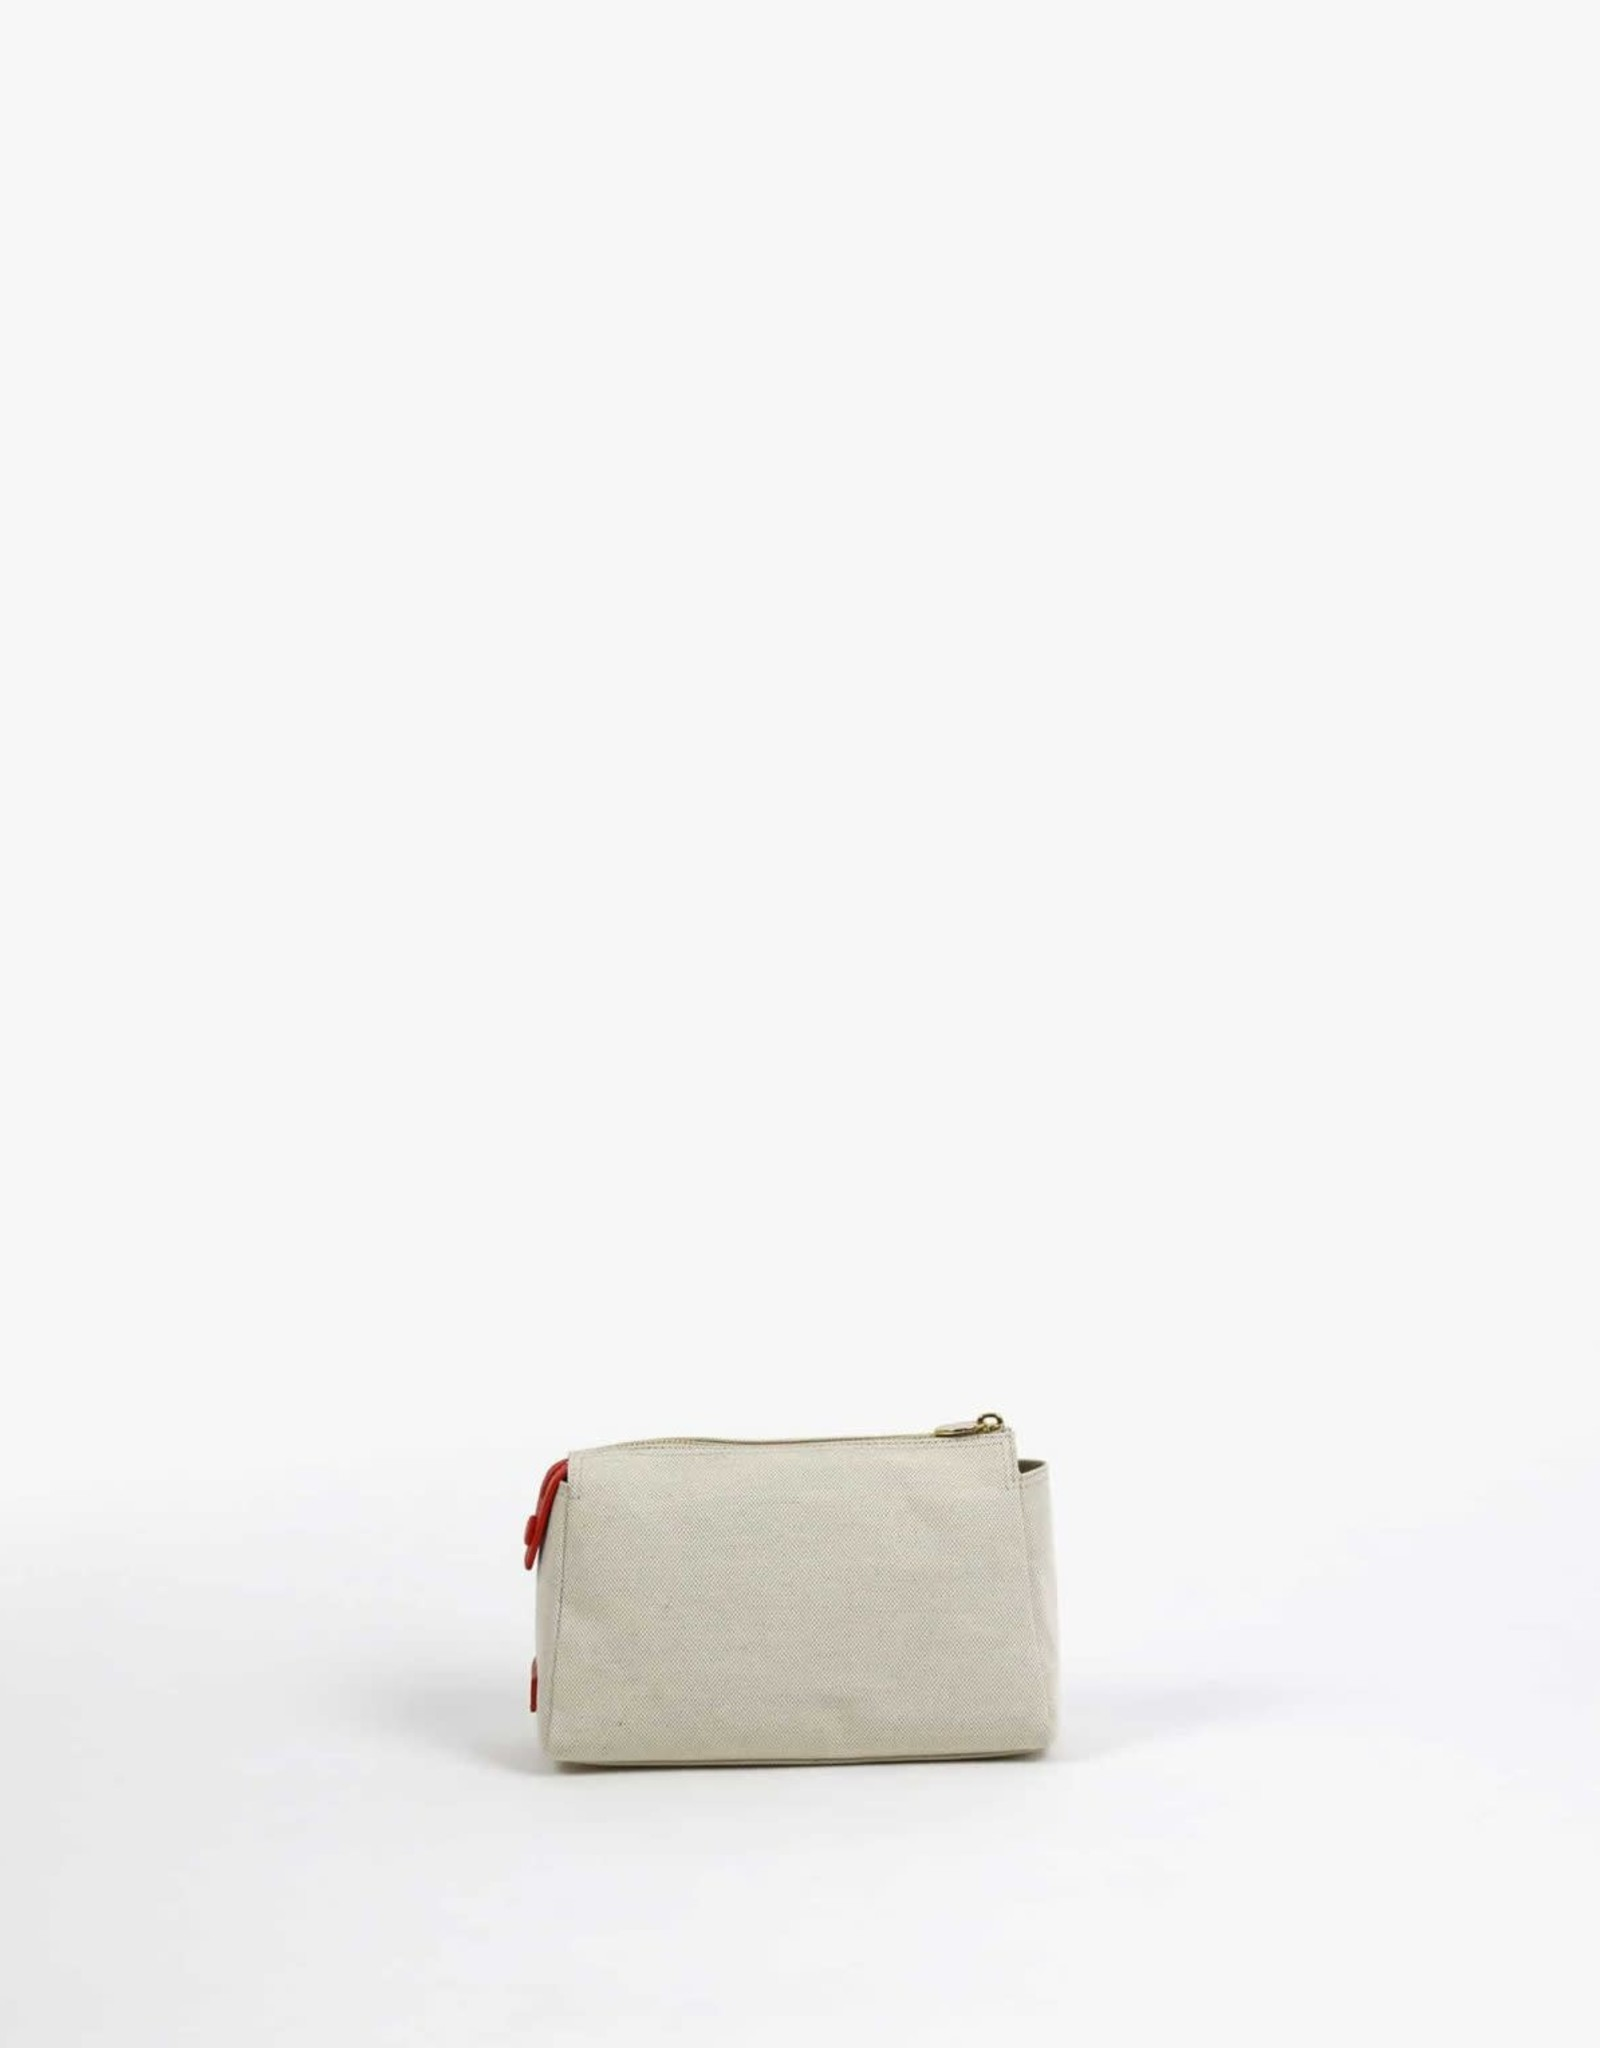 Neely & Chloe Canvas Pouch